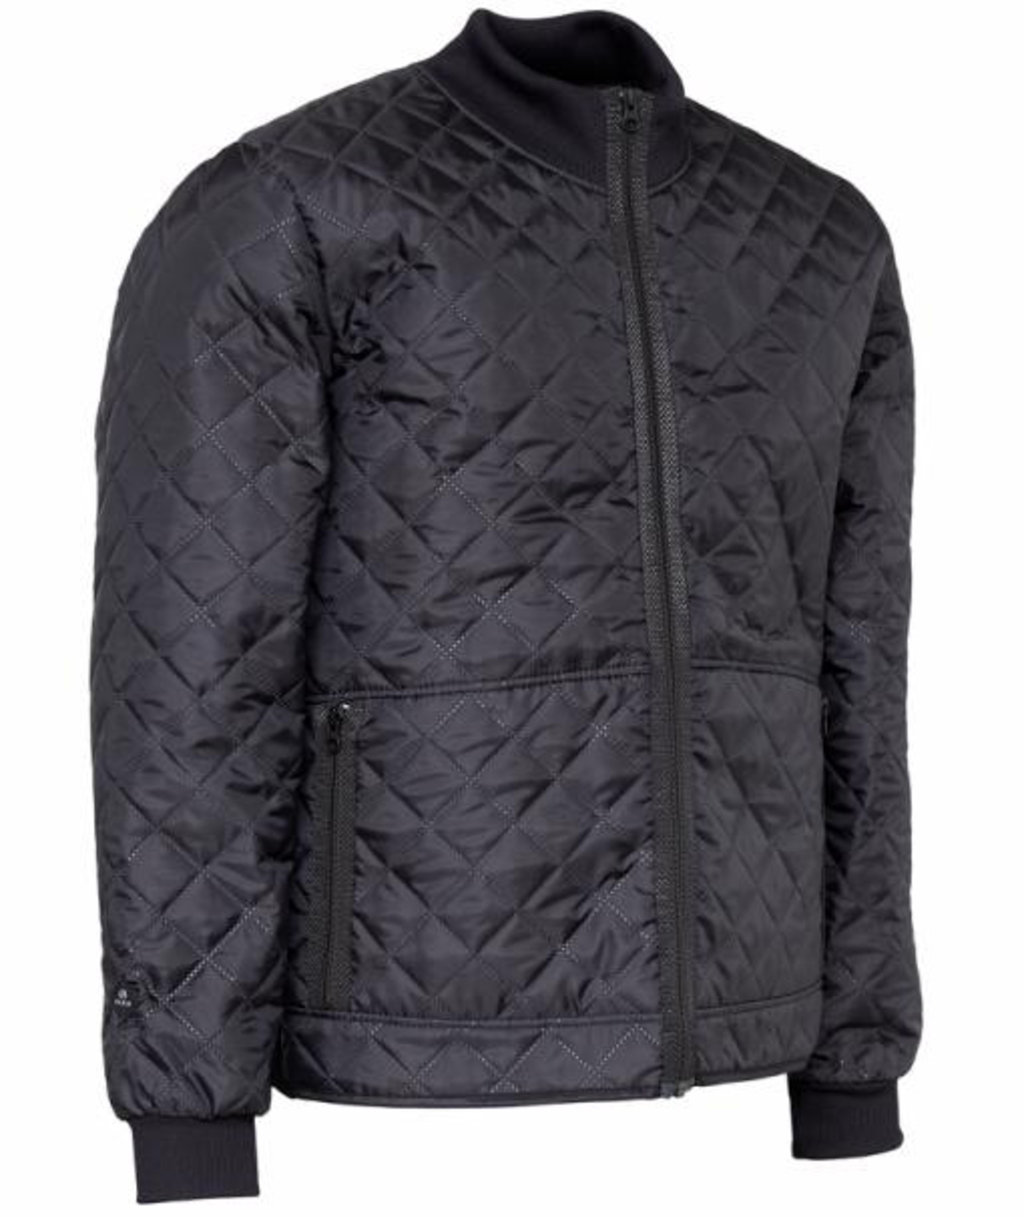 Elka thermal jacket, Black